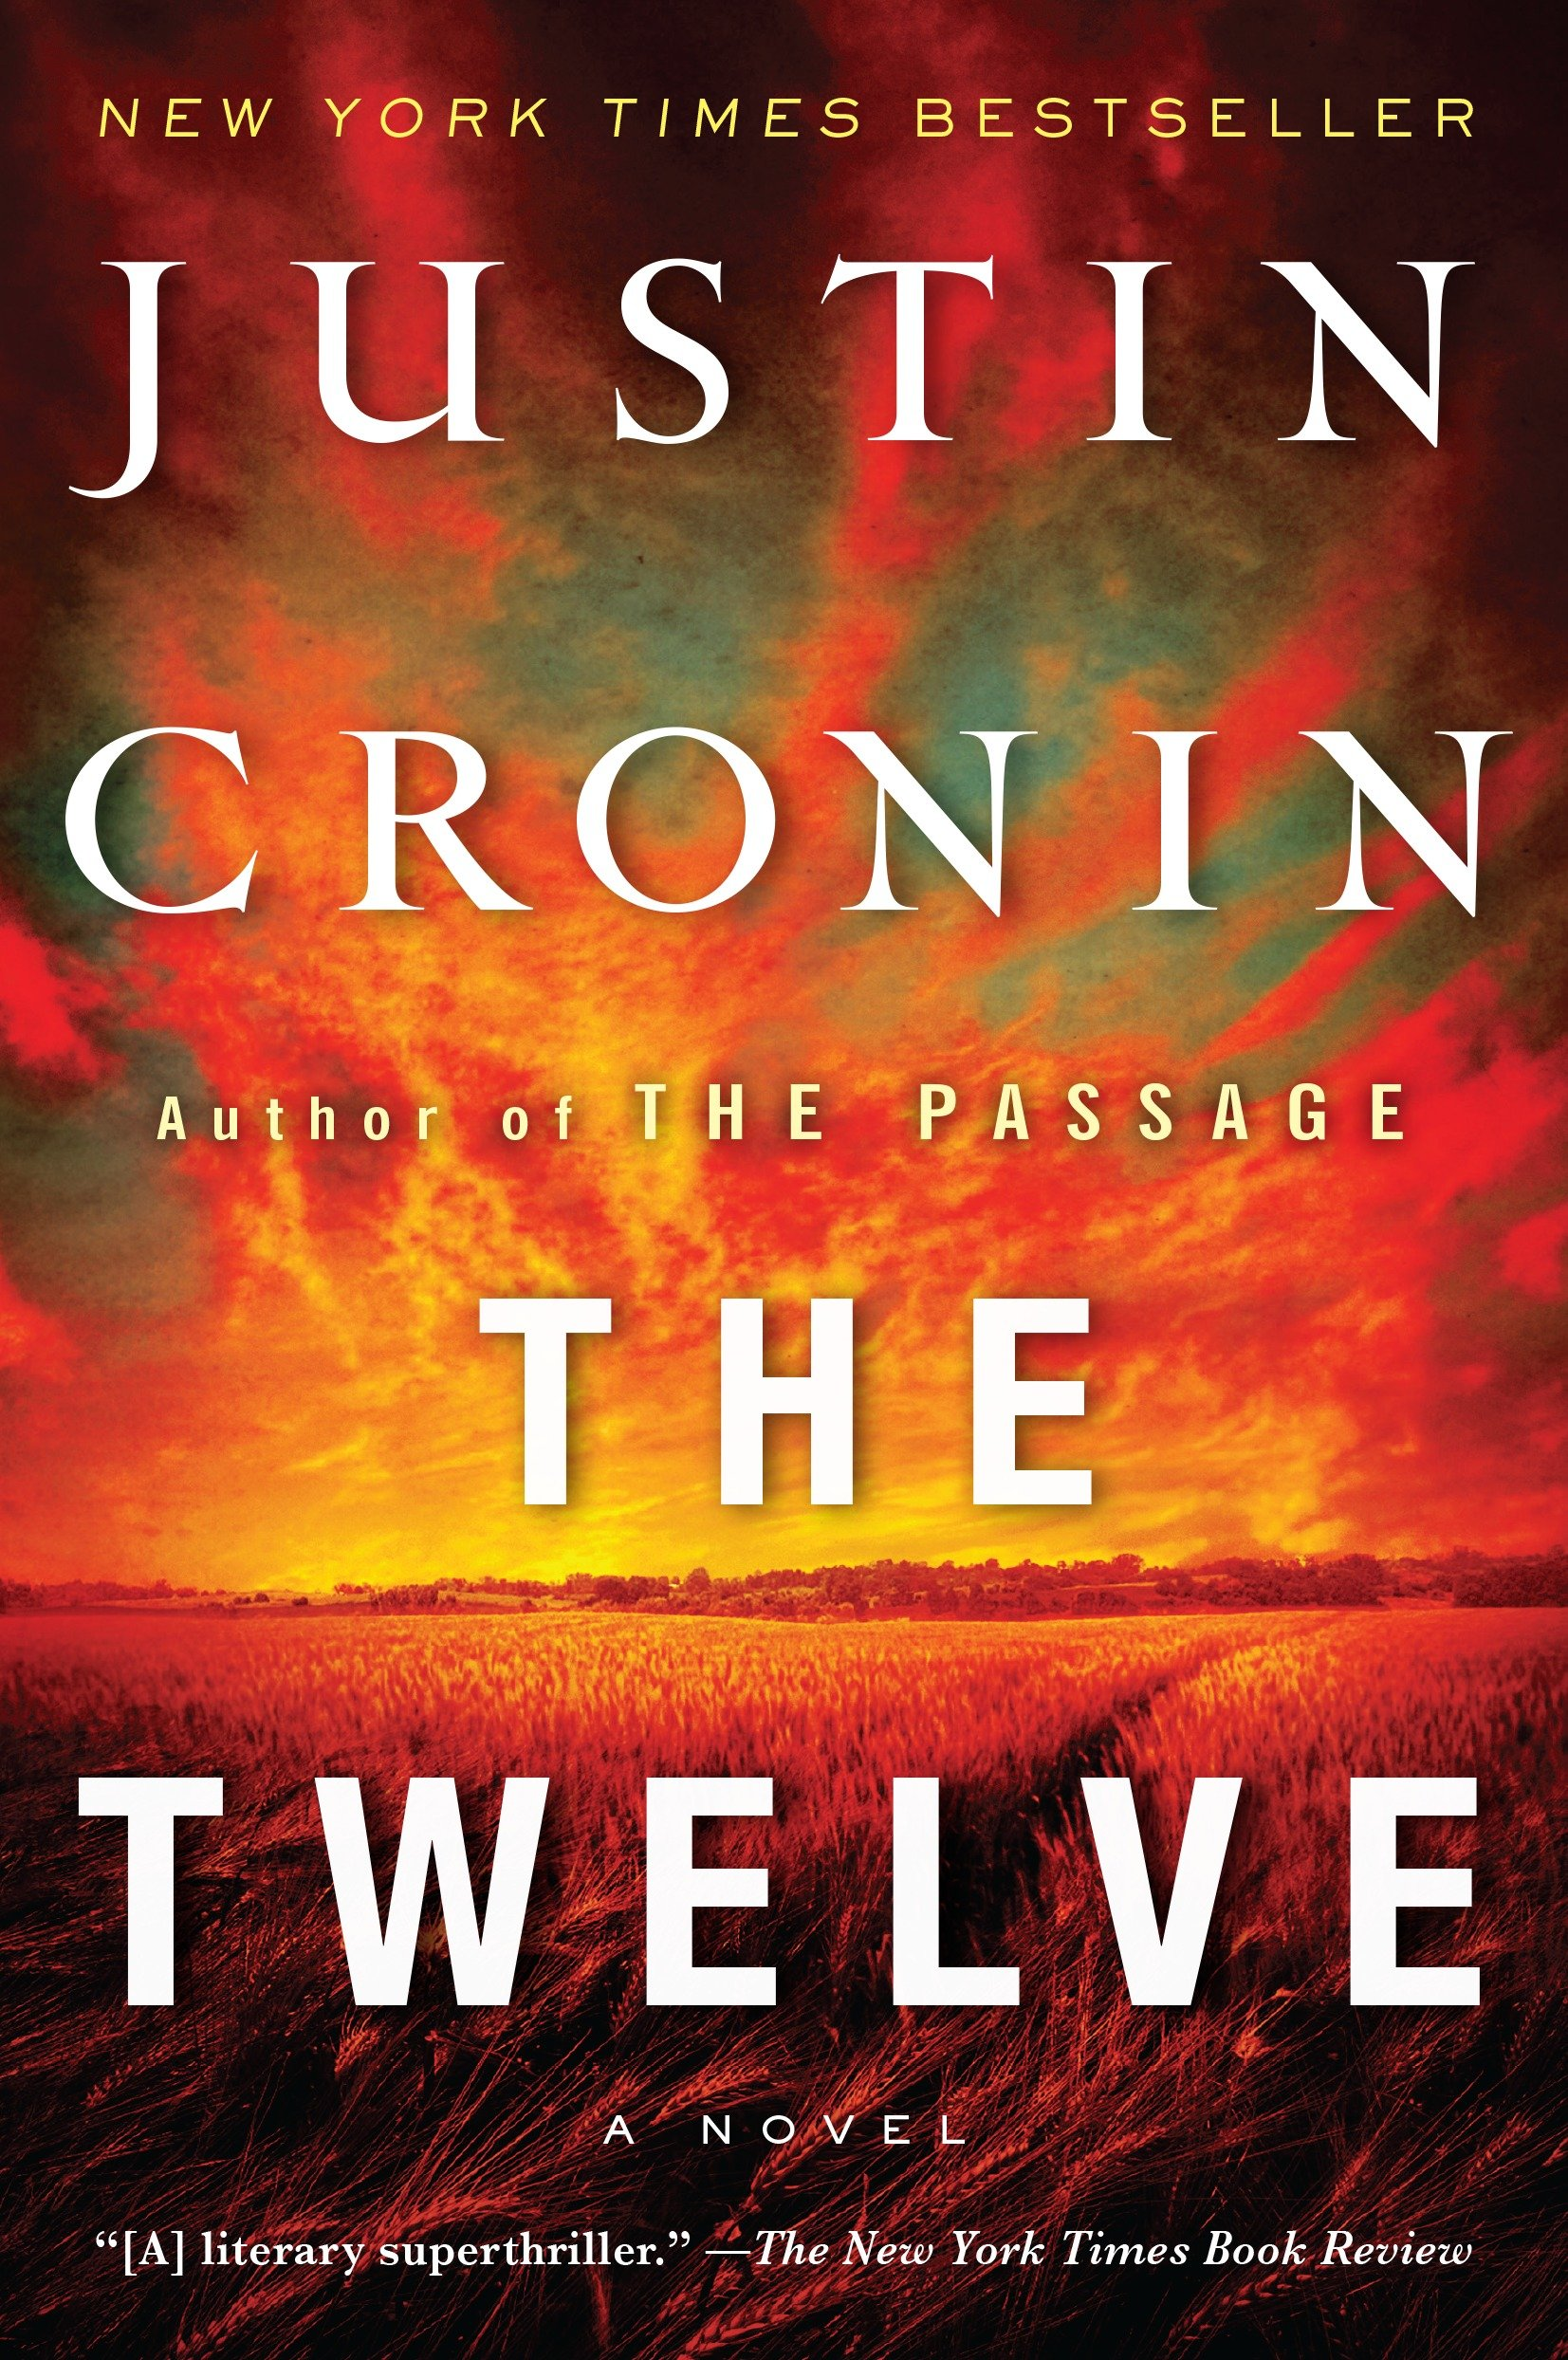 The twelve cover image